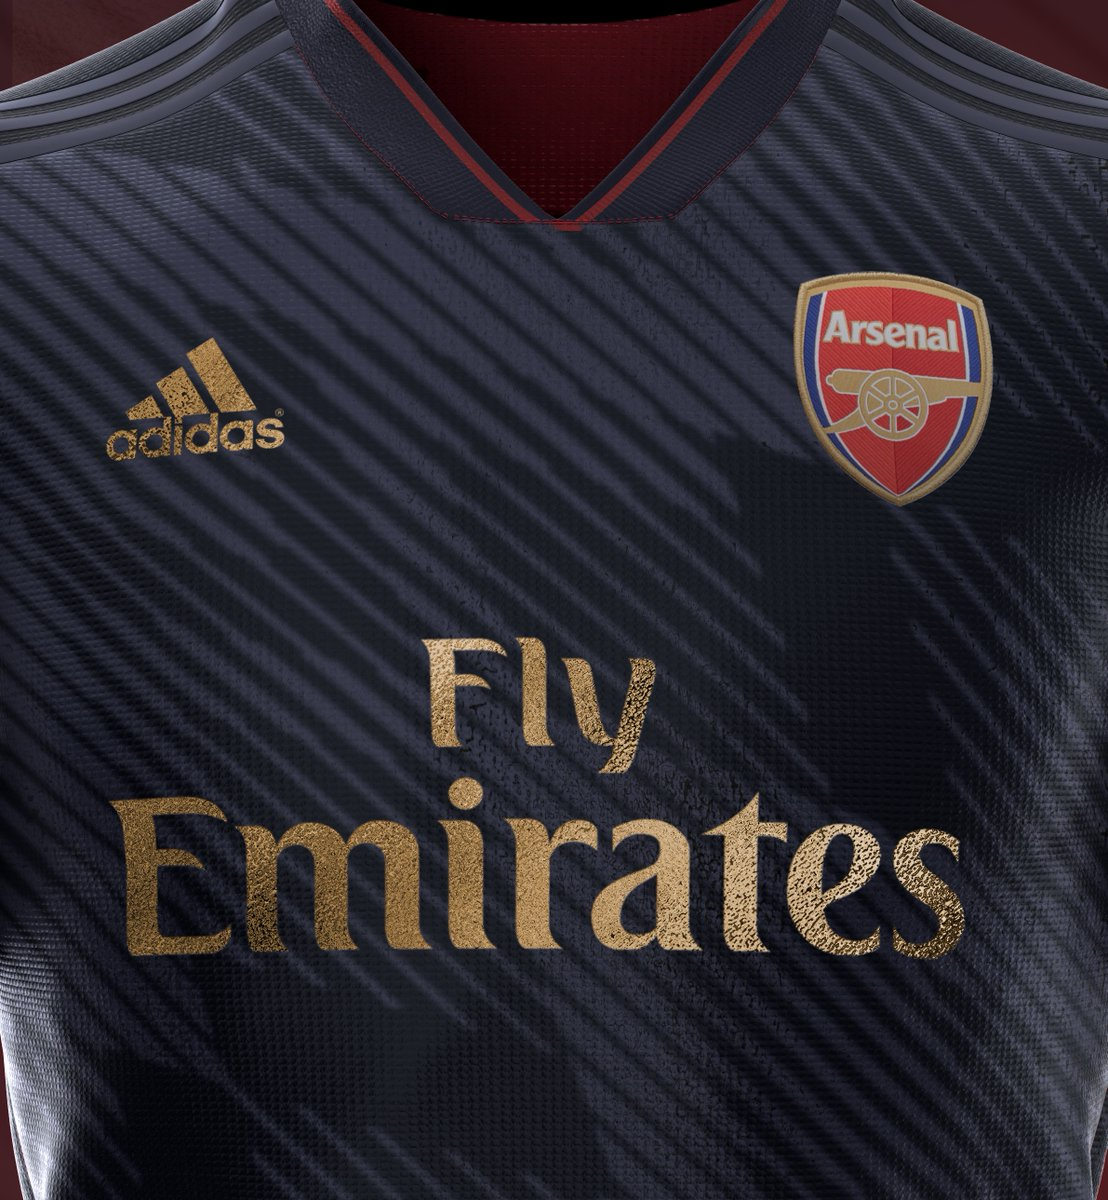 5c0d20b03 Stunning Adidas Arsenal 19-20 Home, Away & Third Kit Concepts by  Rupertgraphic